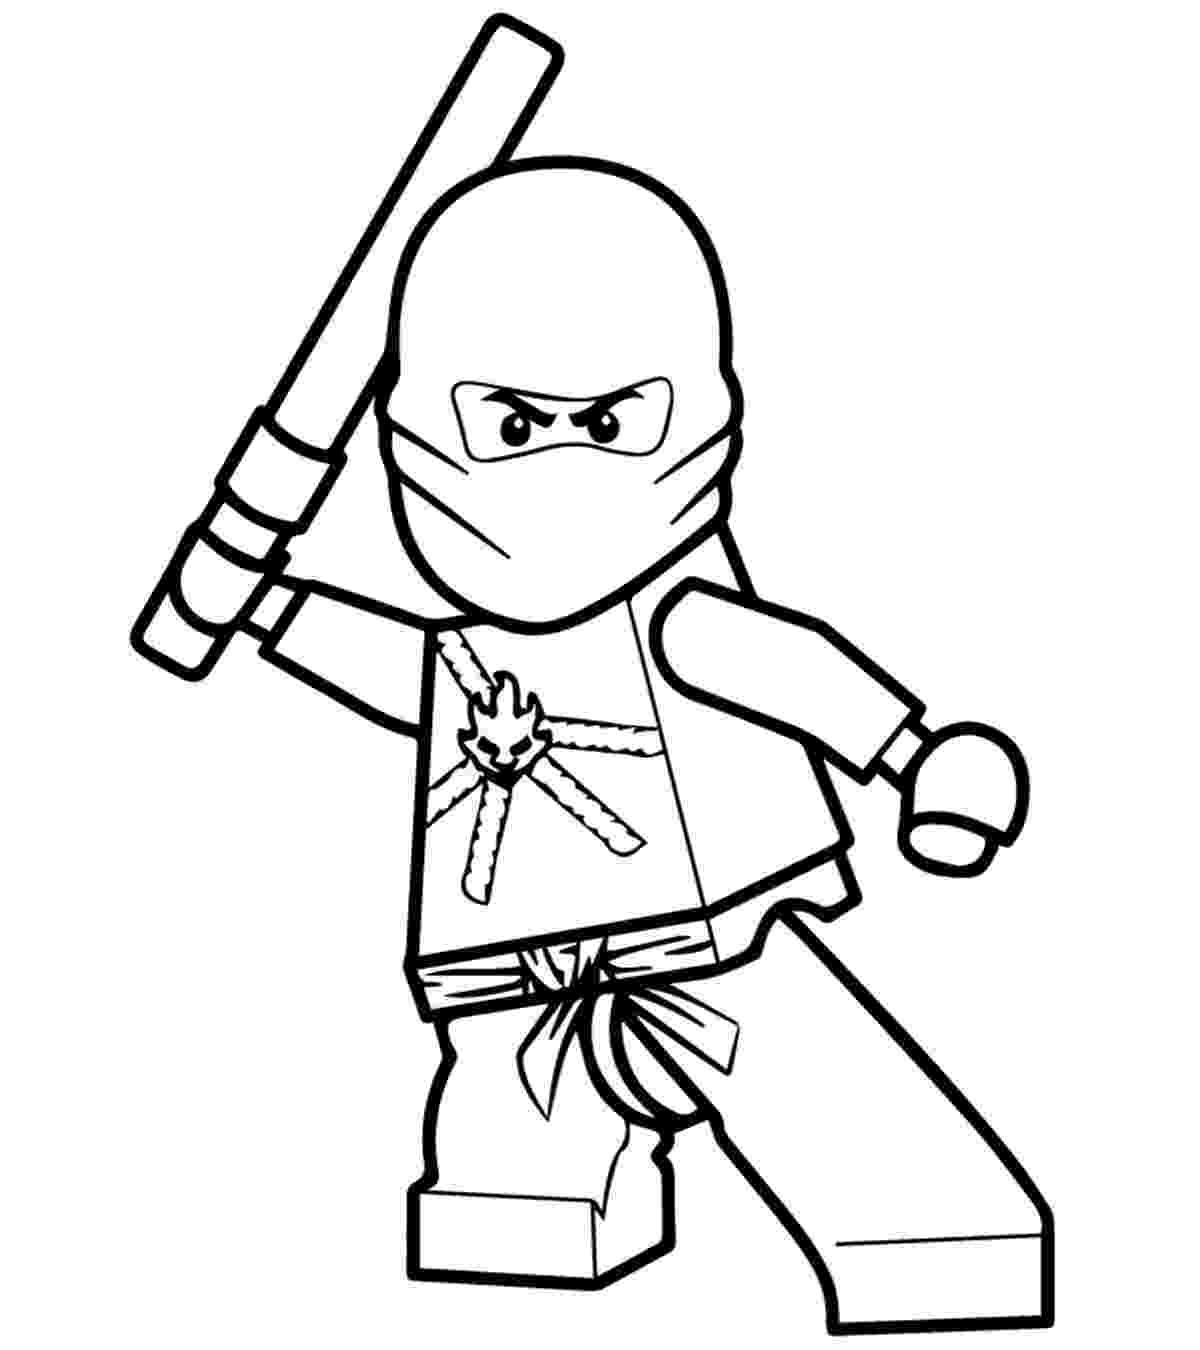 ninjago pictures to print cartoon coloring pages momjunction pictures print ninjago to